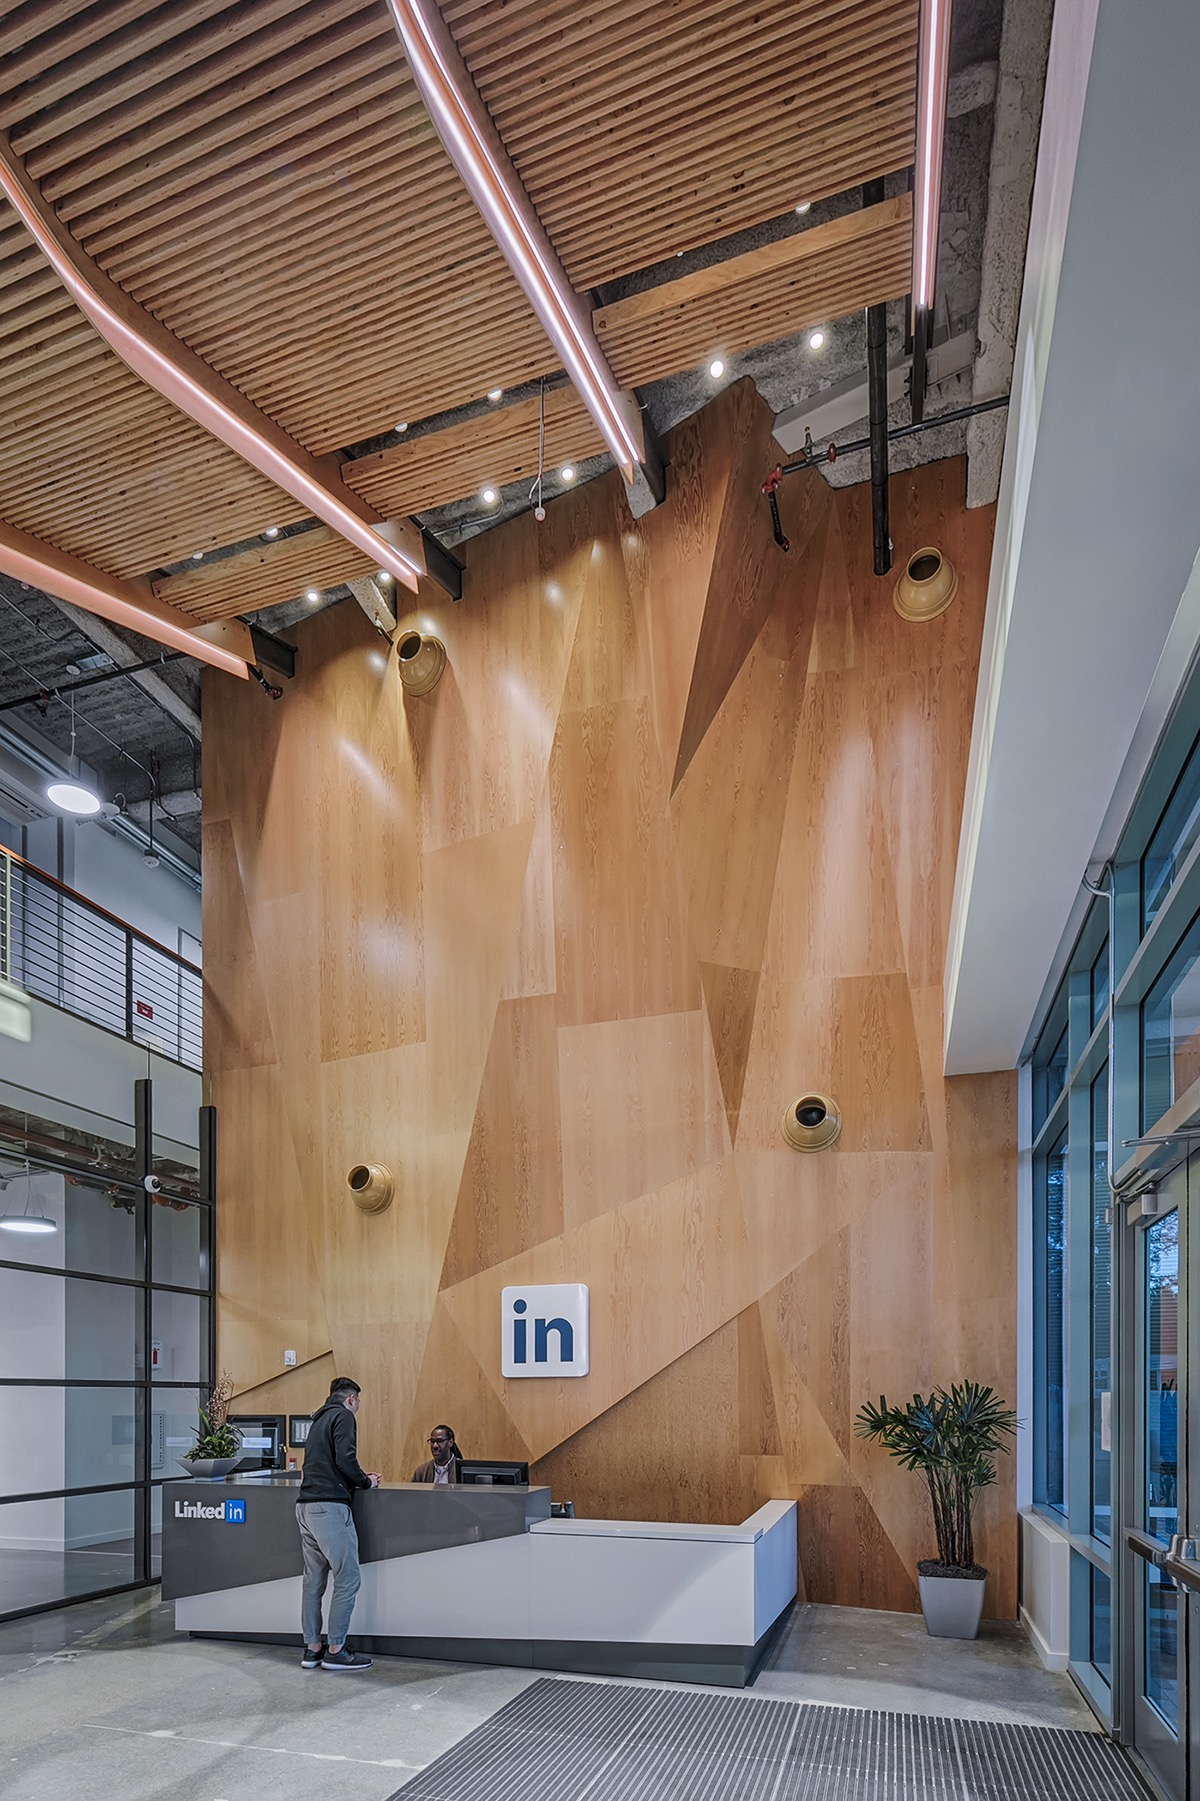 linkedin-sunnyvale-office-2